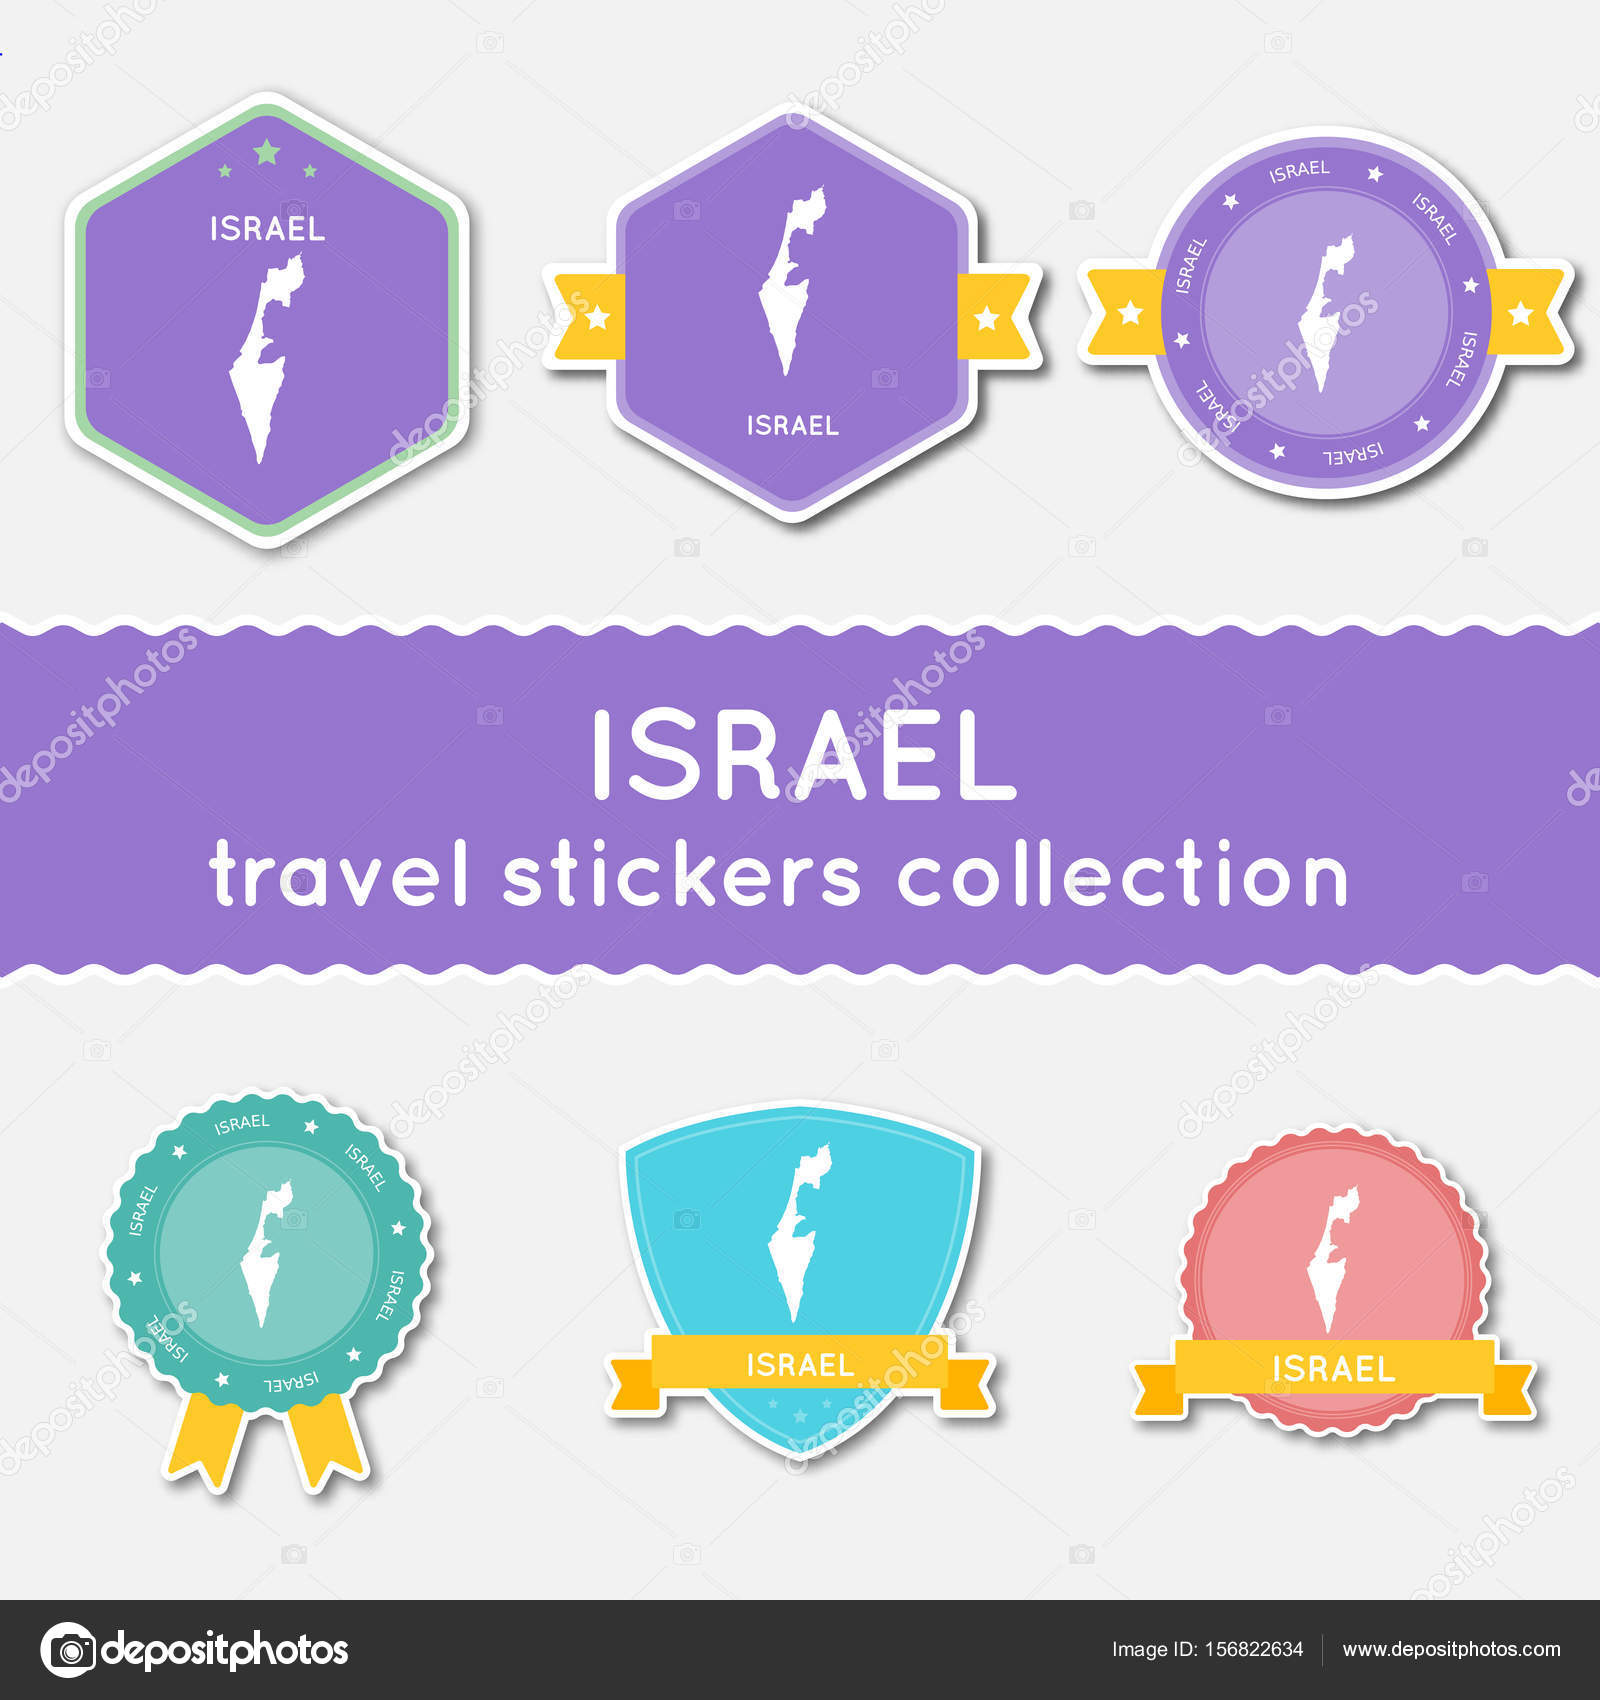 israel travel stickers collection big set of stickers with us state map and name flat material